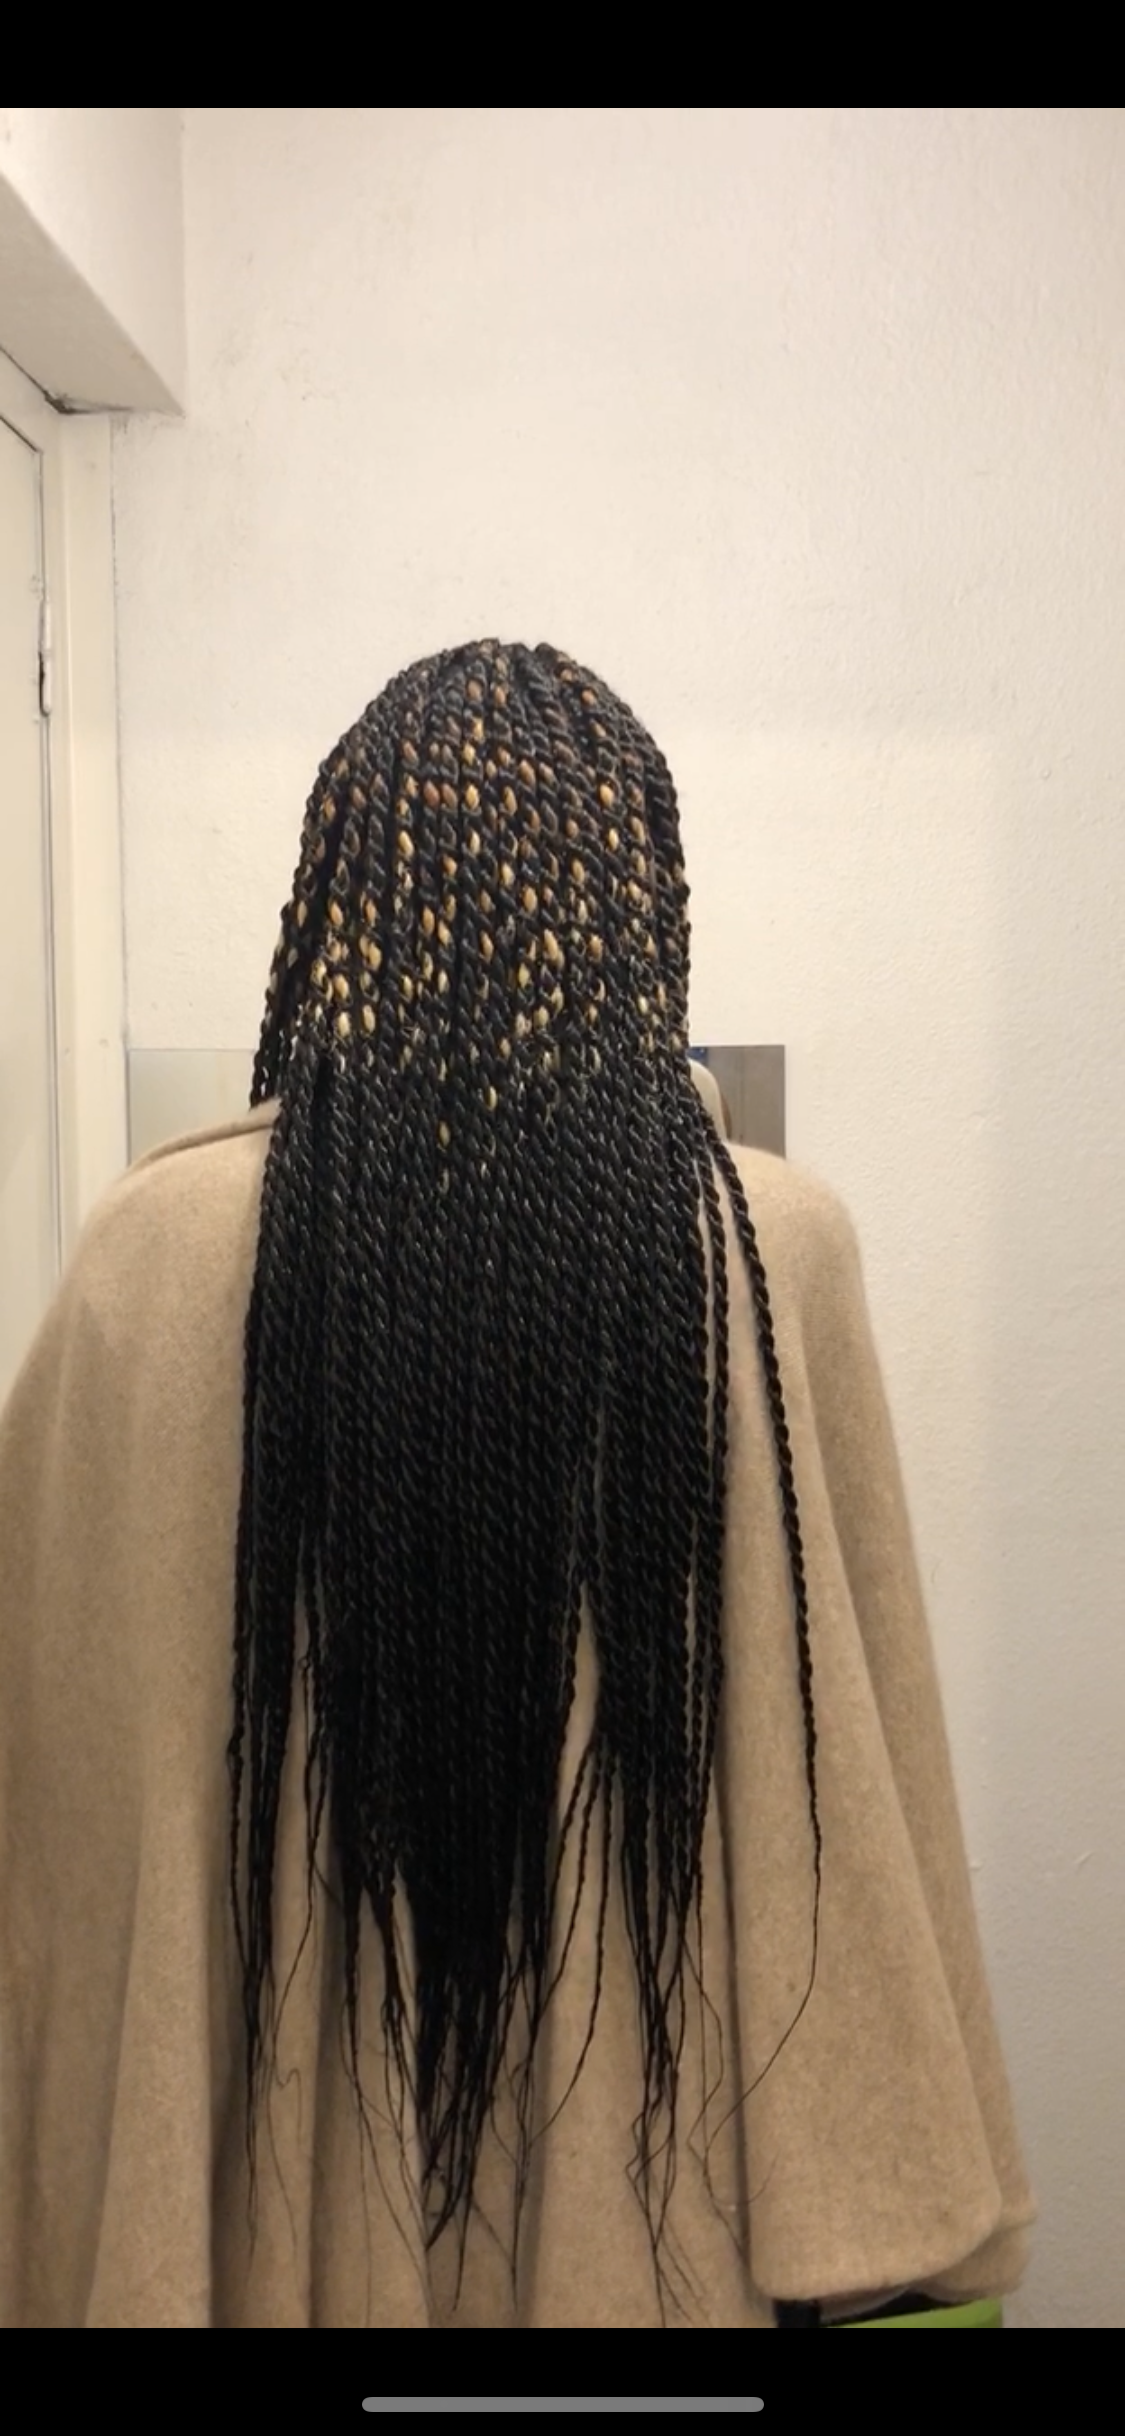 salon de coiffure afro tresse tresses box braids crochet braids vanilles tissages paris 75 77 78 91 92 93 94 95 LNQWSVTN